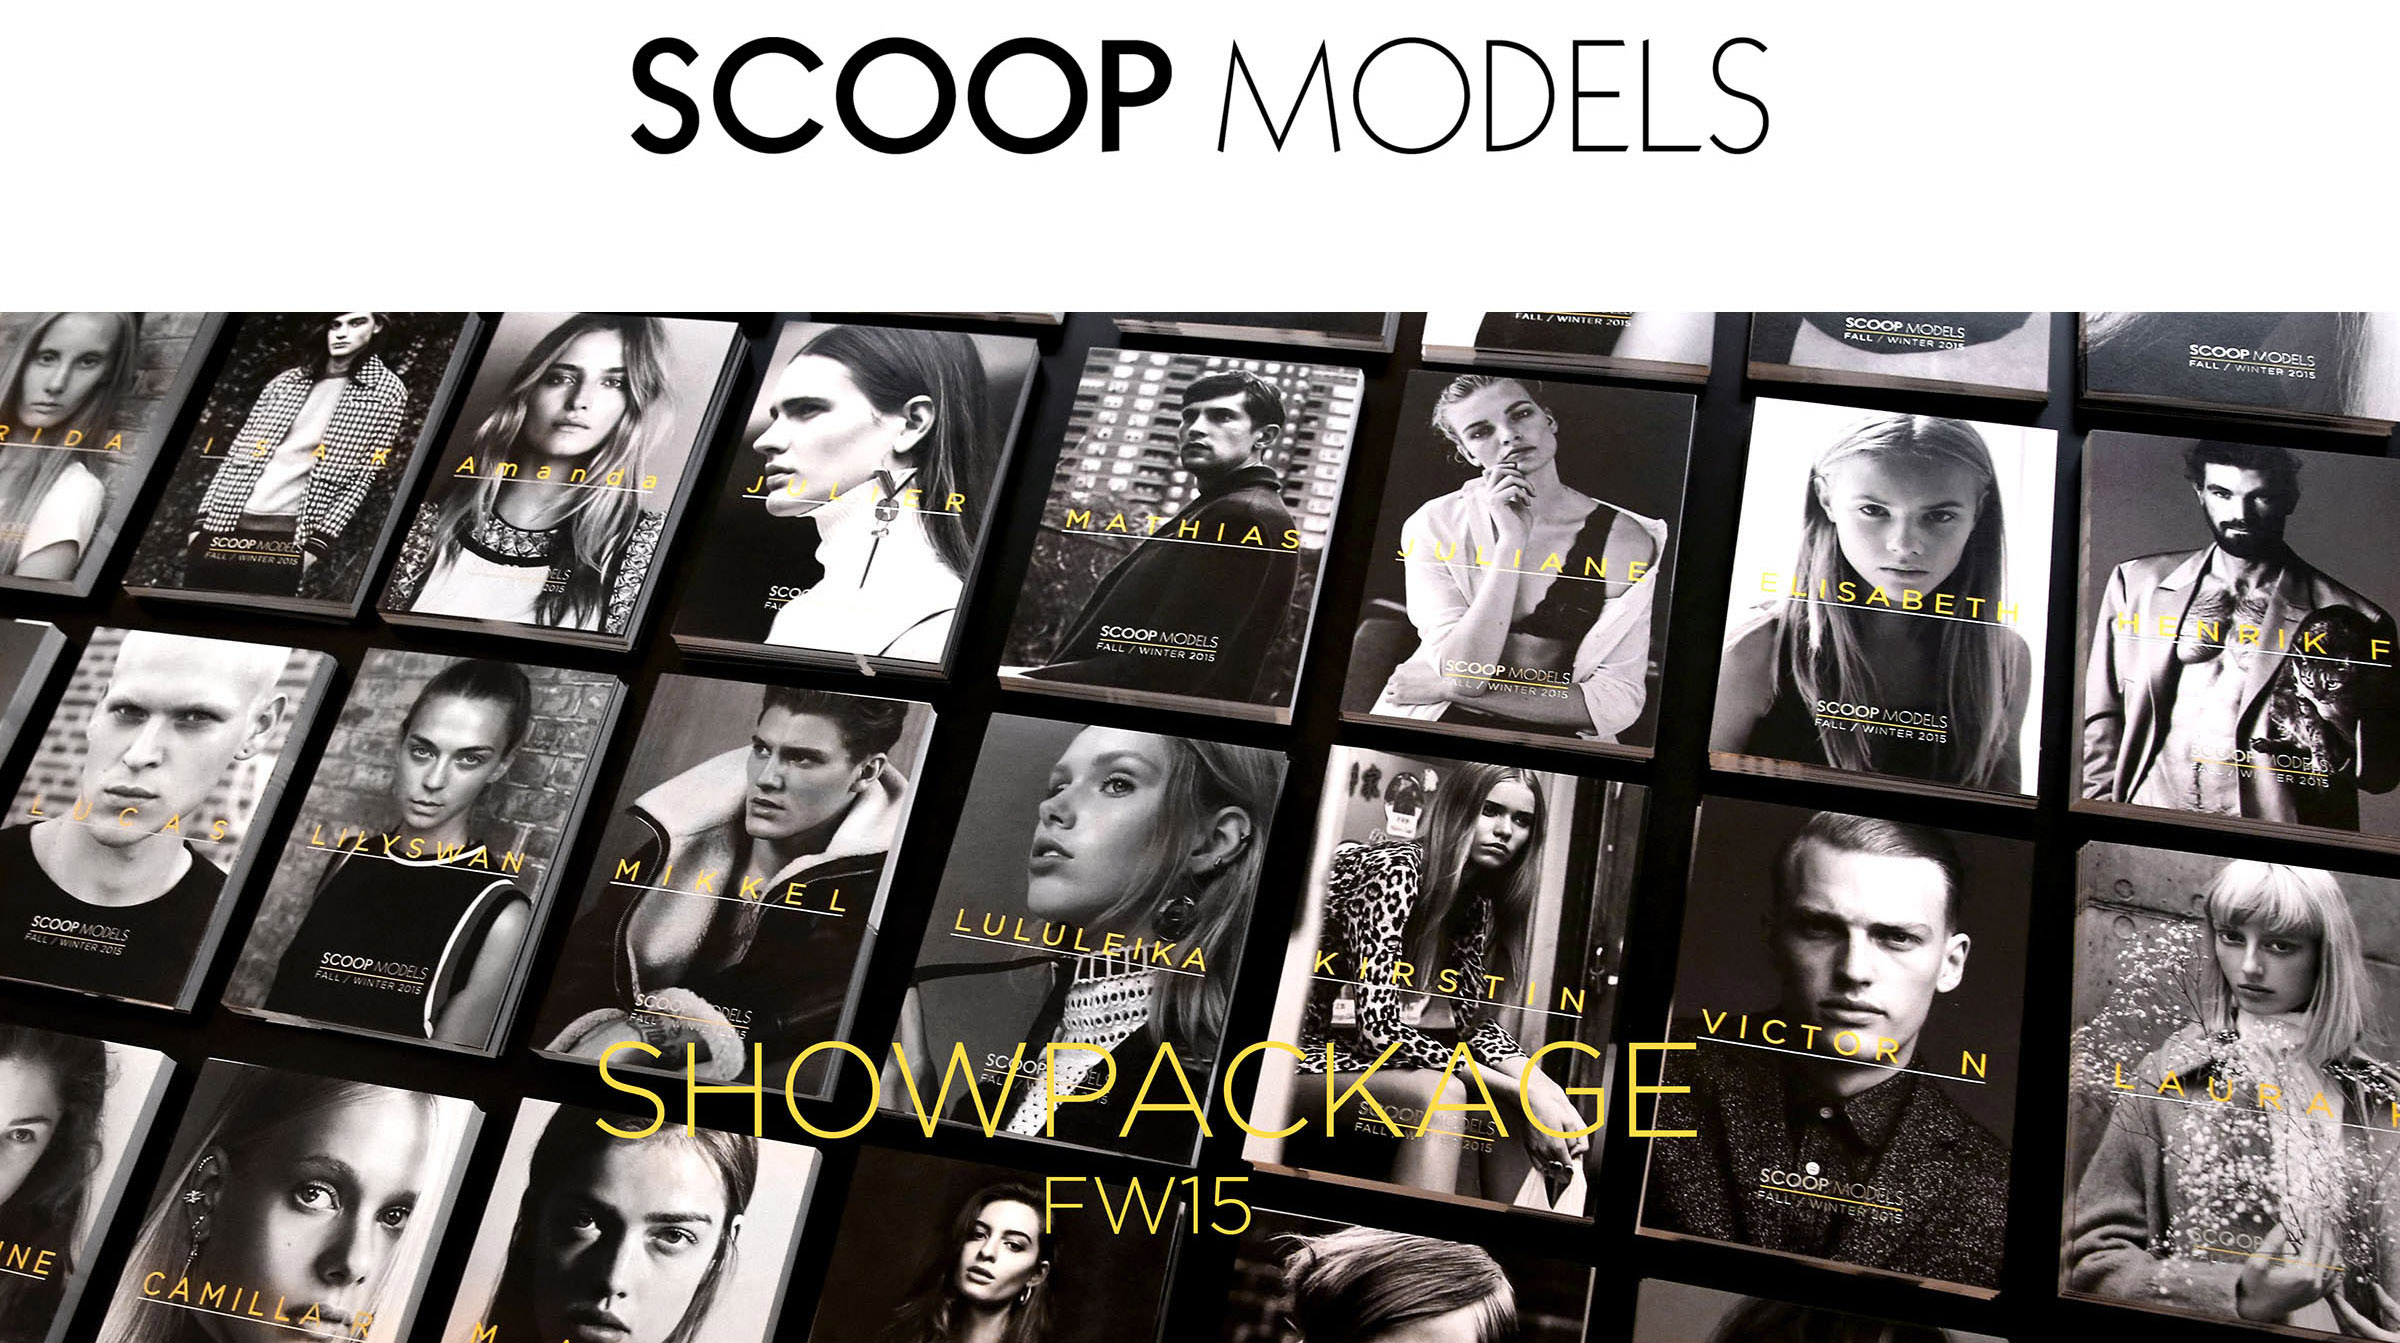 scoopmodels_showpackage_cphw15_mindre